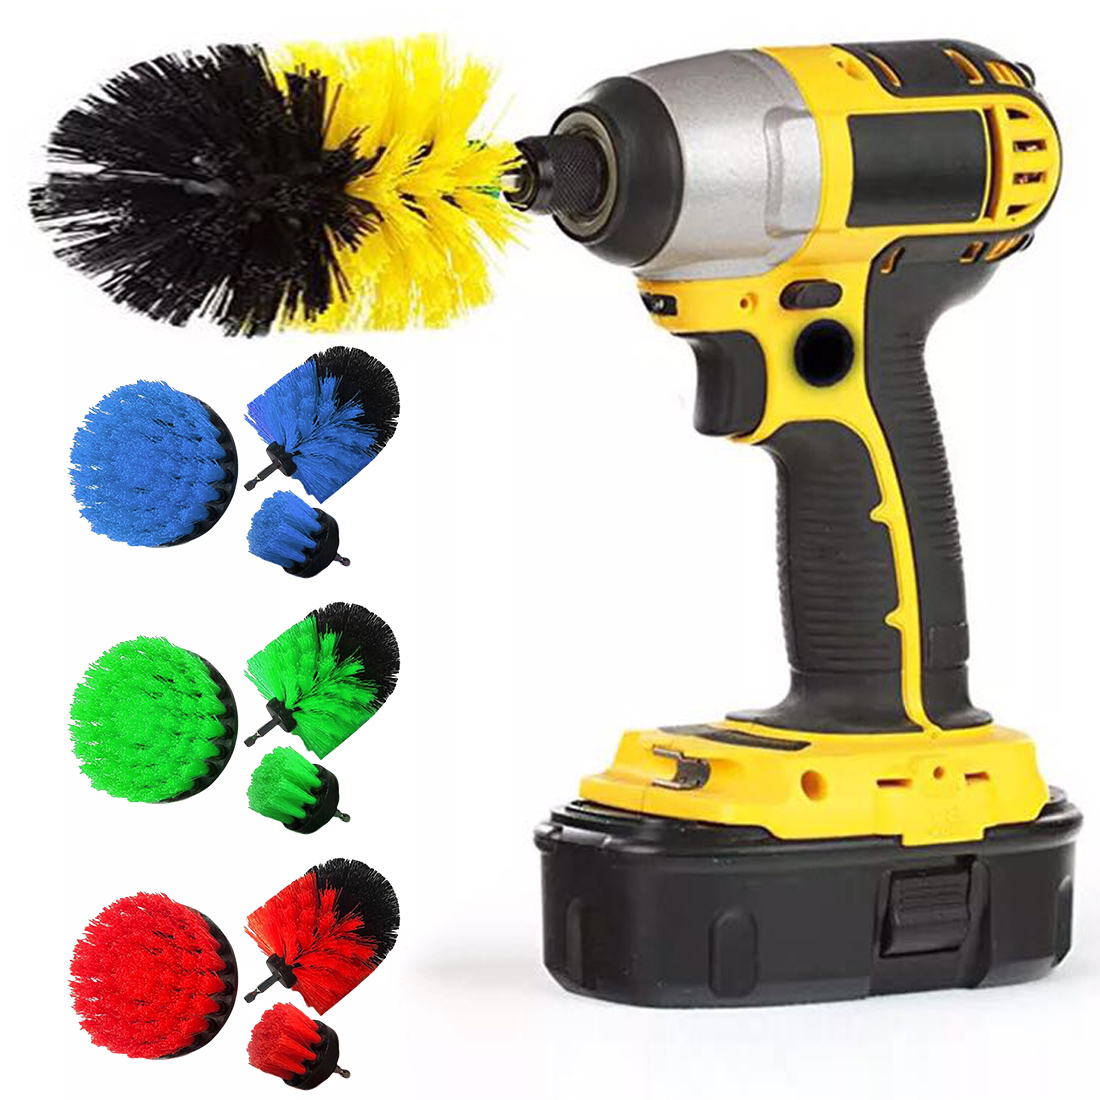 Electric Drill Brush Kit 3pcs/set Tile Grout Scrubber Cleaning Drill Nylon Brushes Tub Cleaner Kit Wood Grinding Polishing Tool недорого